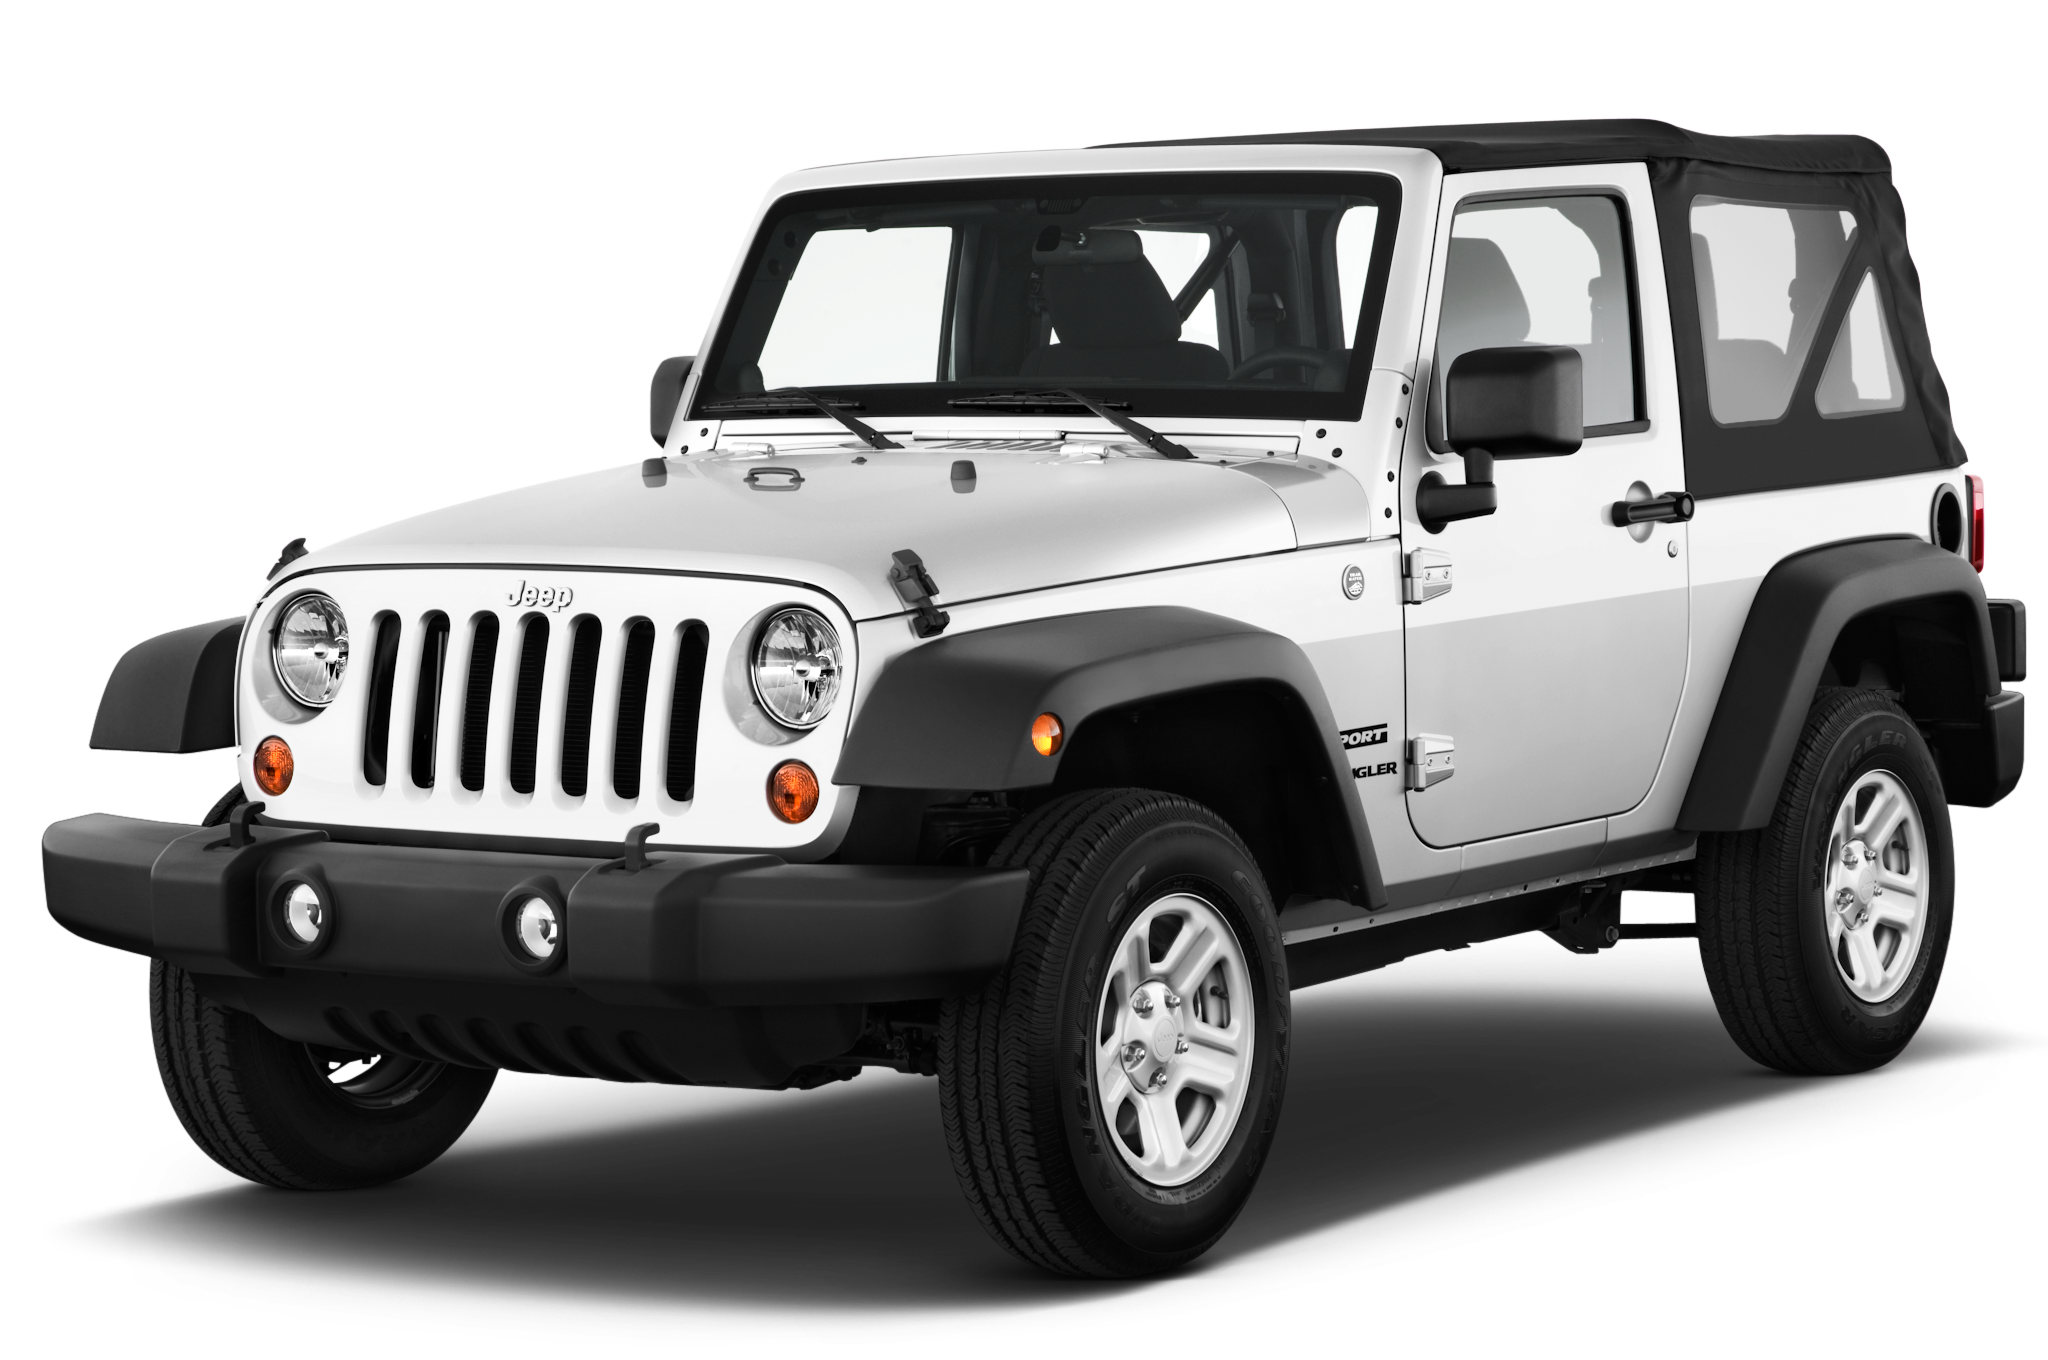 2015 Jeep Willys Specs >> 2014 Jeep Wrangler Willys Wheeler Edition Revealed - Automobile Magazine